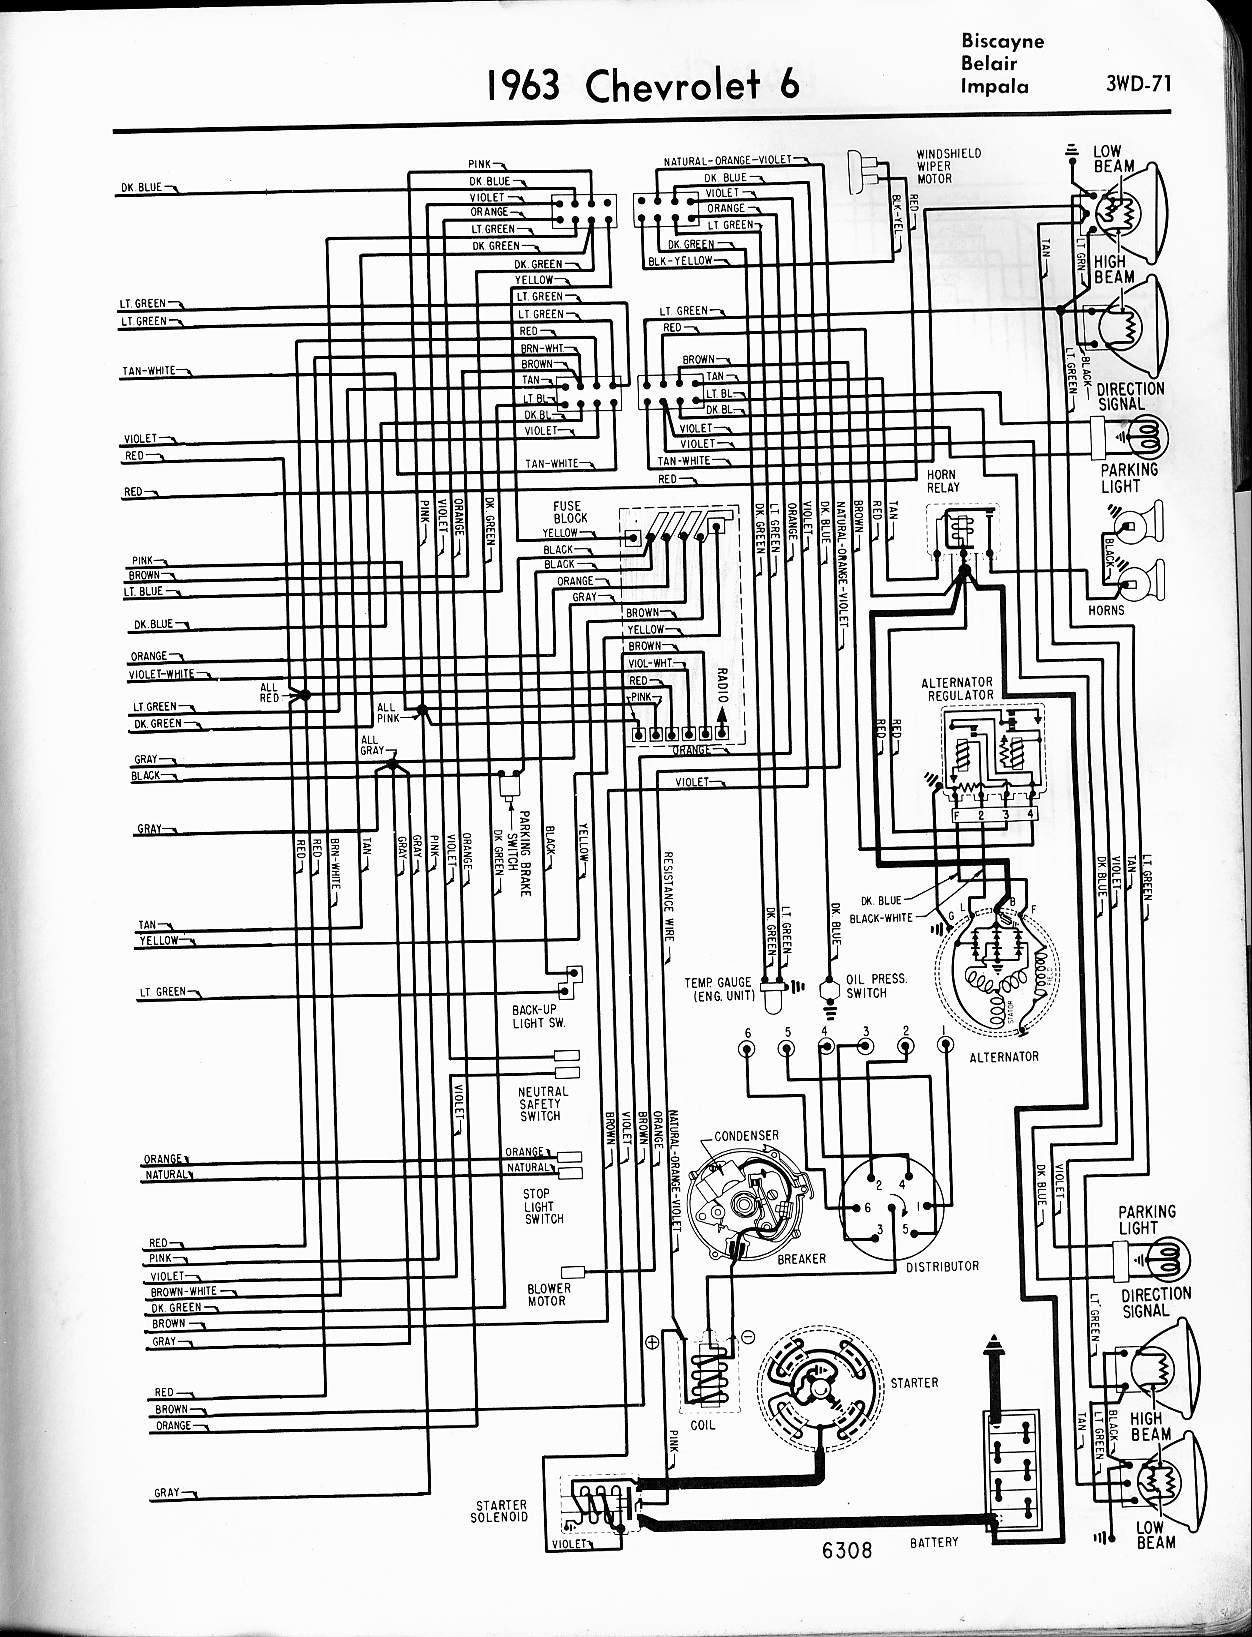 1965 impala wiring diagram easy wiring diagrams u2022 rh art isere com 1965 chevrolet impala wiring diagram